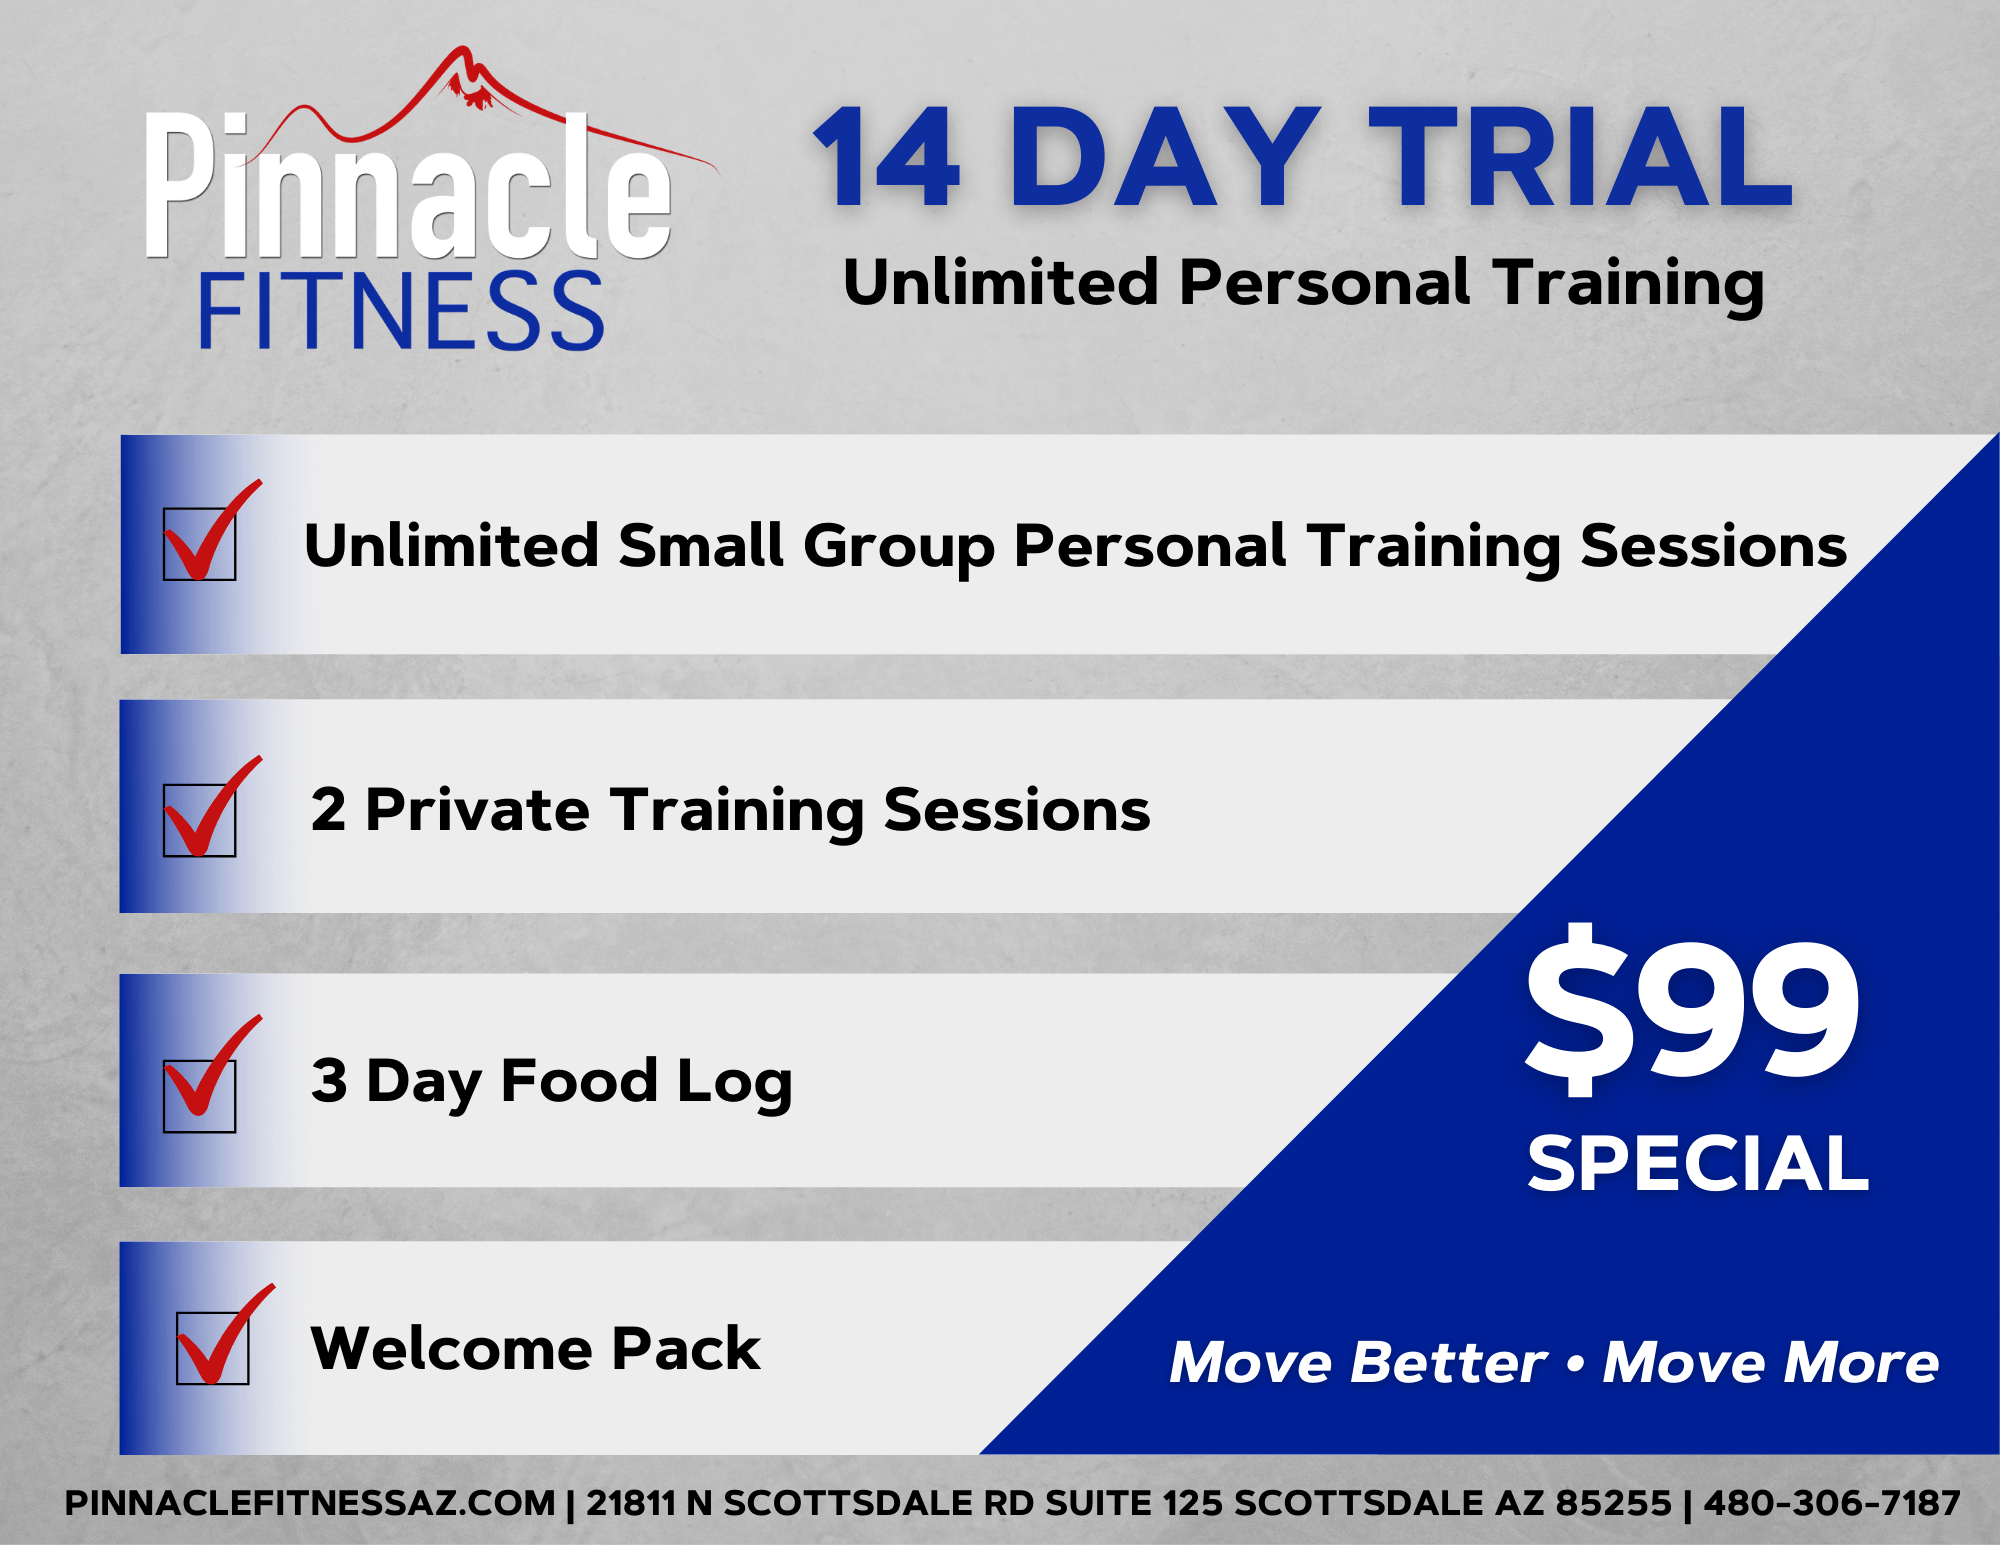 14 Day Trial at Pinnacle Fitness Scottsdale